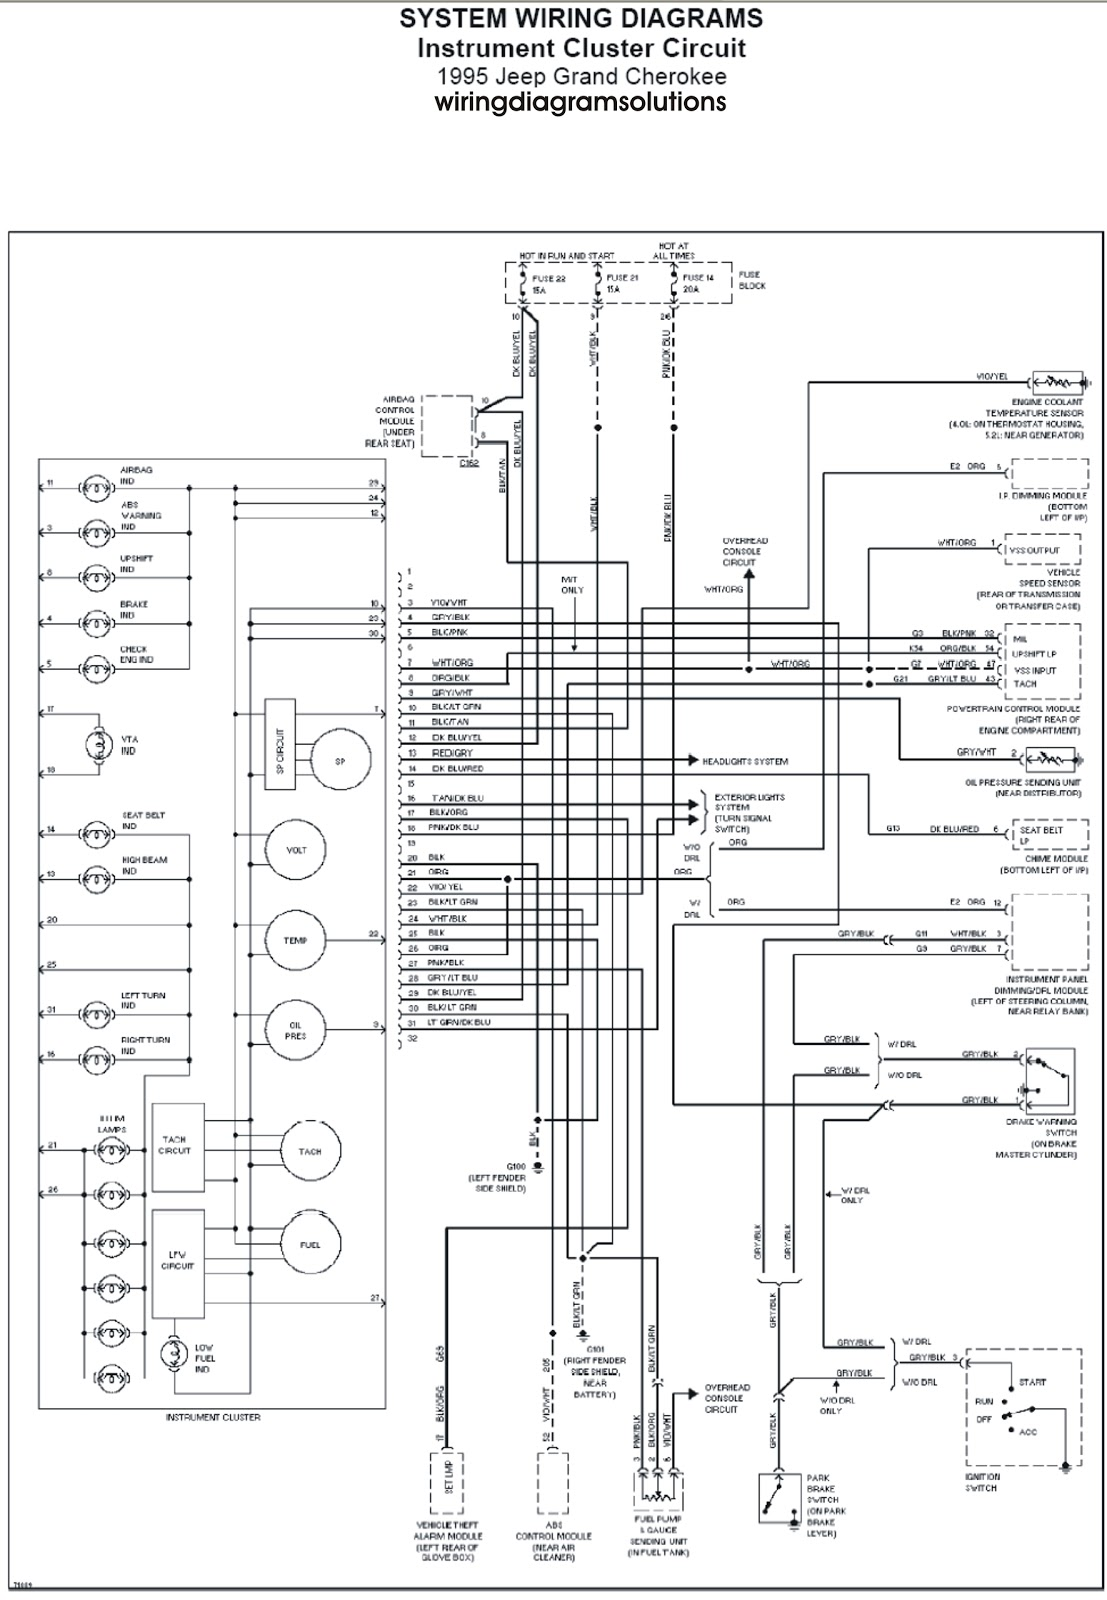 instrument+cluster+Circuit 95 jeep wiring diagram 28 images 1995 jeep wiring diagram 95 jeep wrangler wiring harness diagram at crackthecode.co